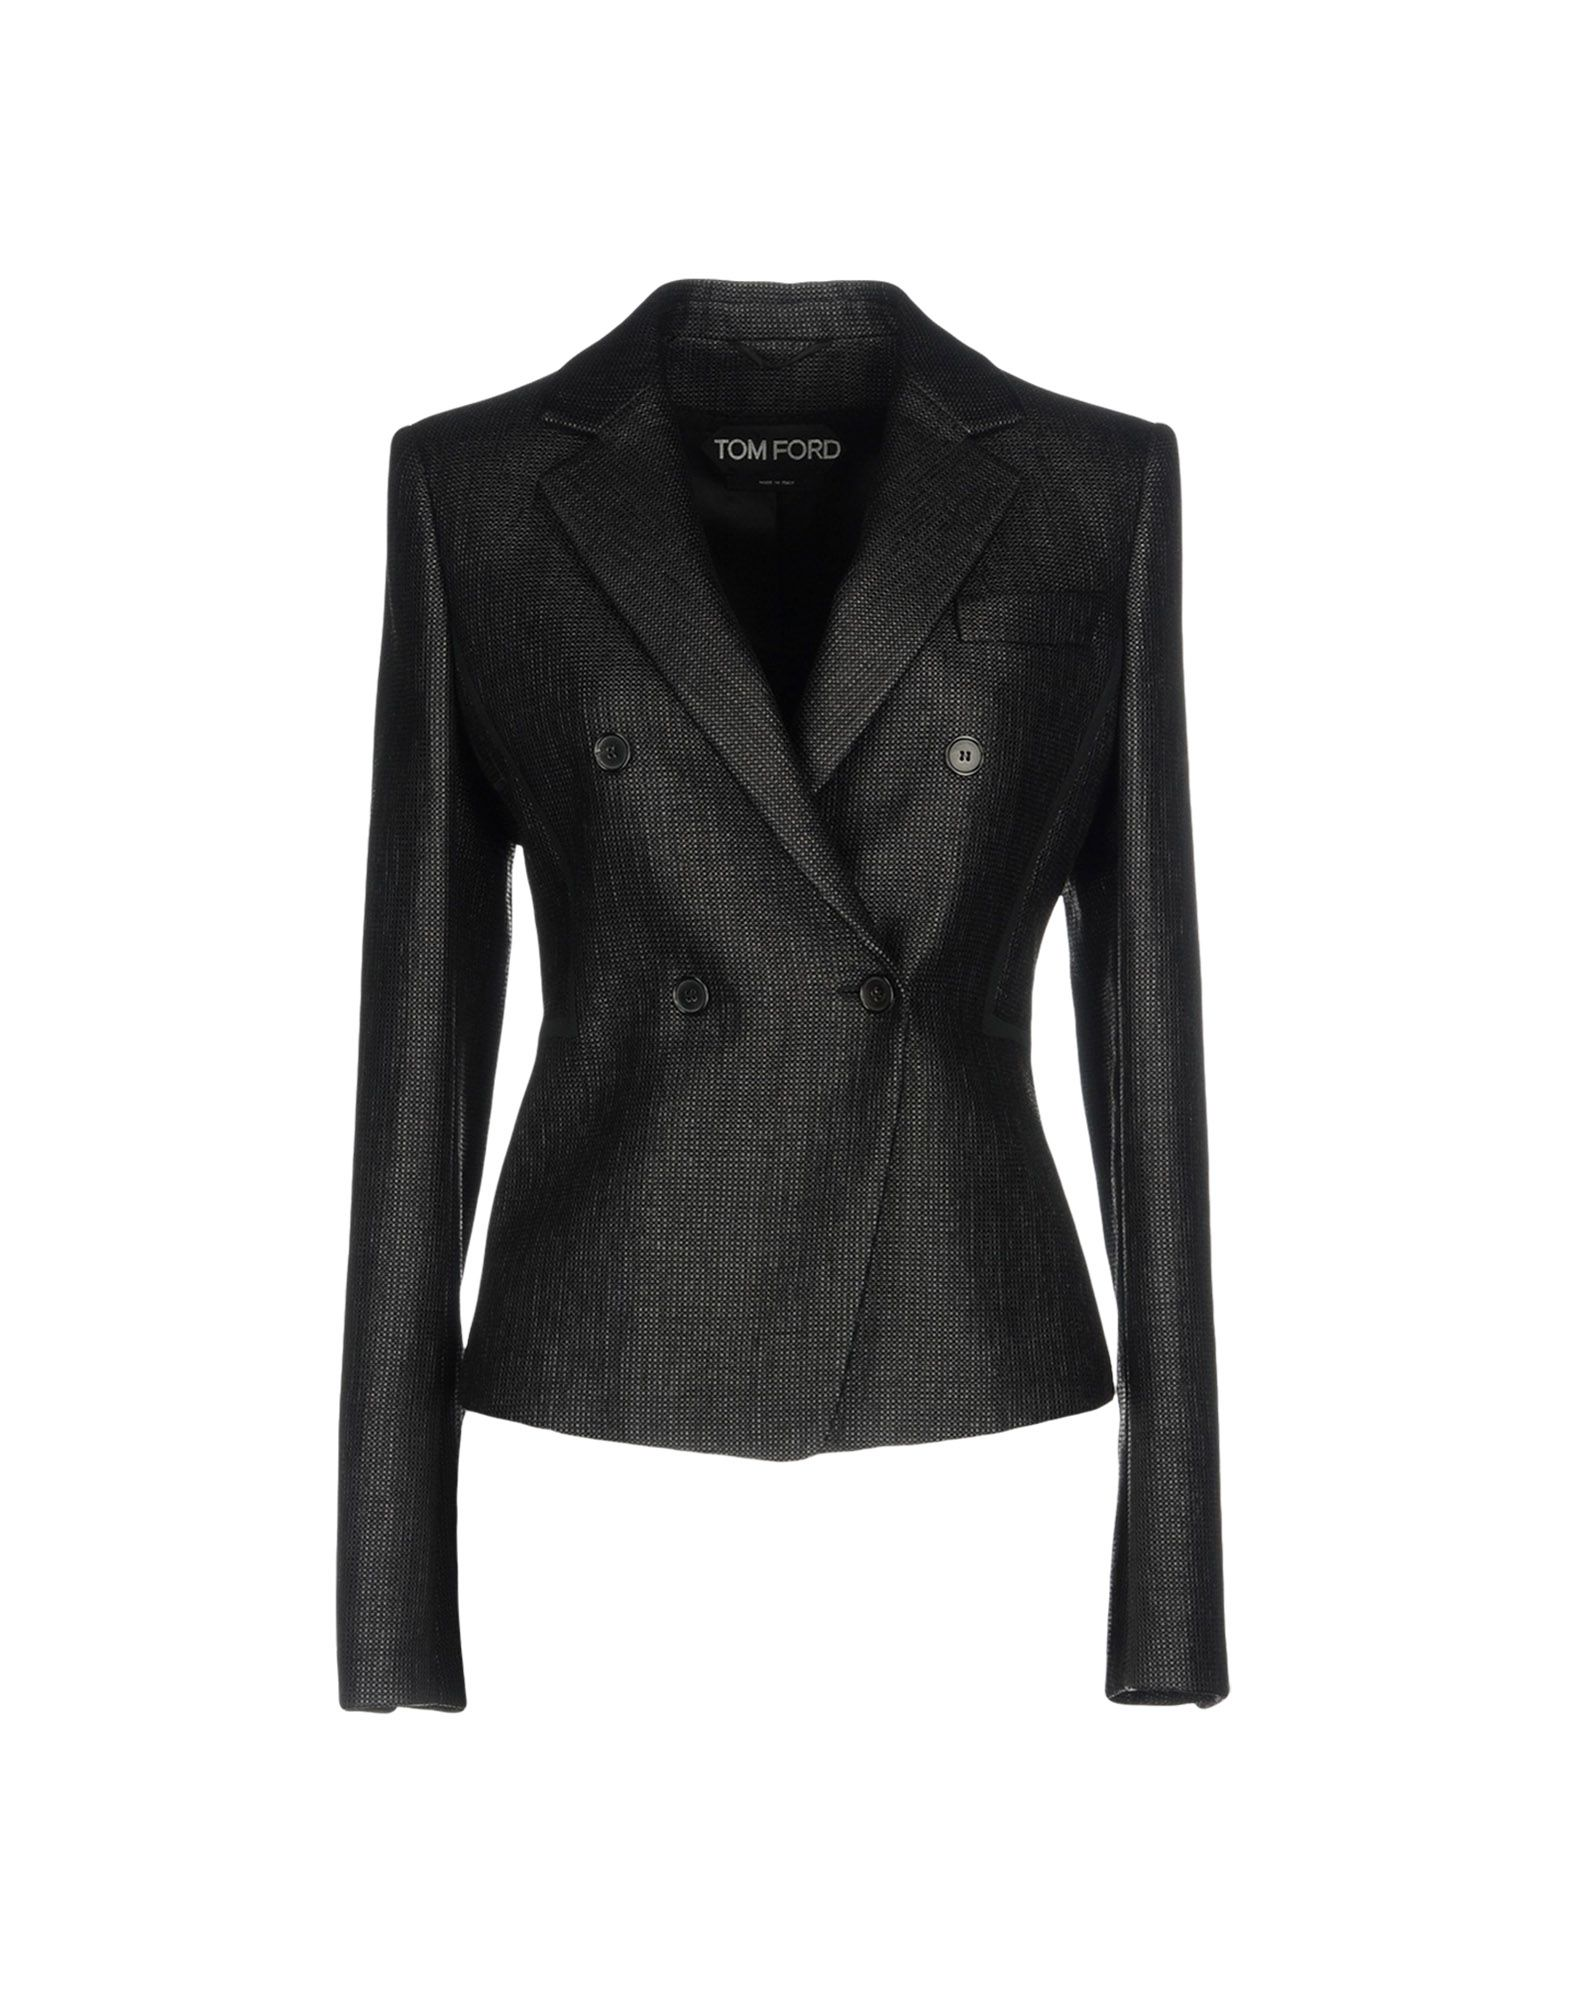 Giacca Tom Ford Donna - Acquista online su PiSmjy